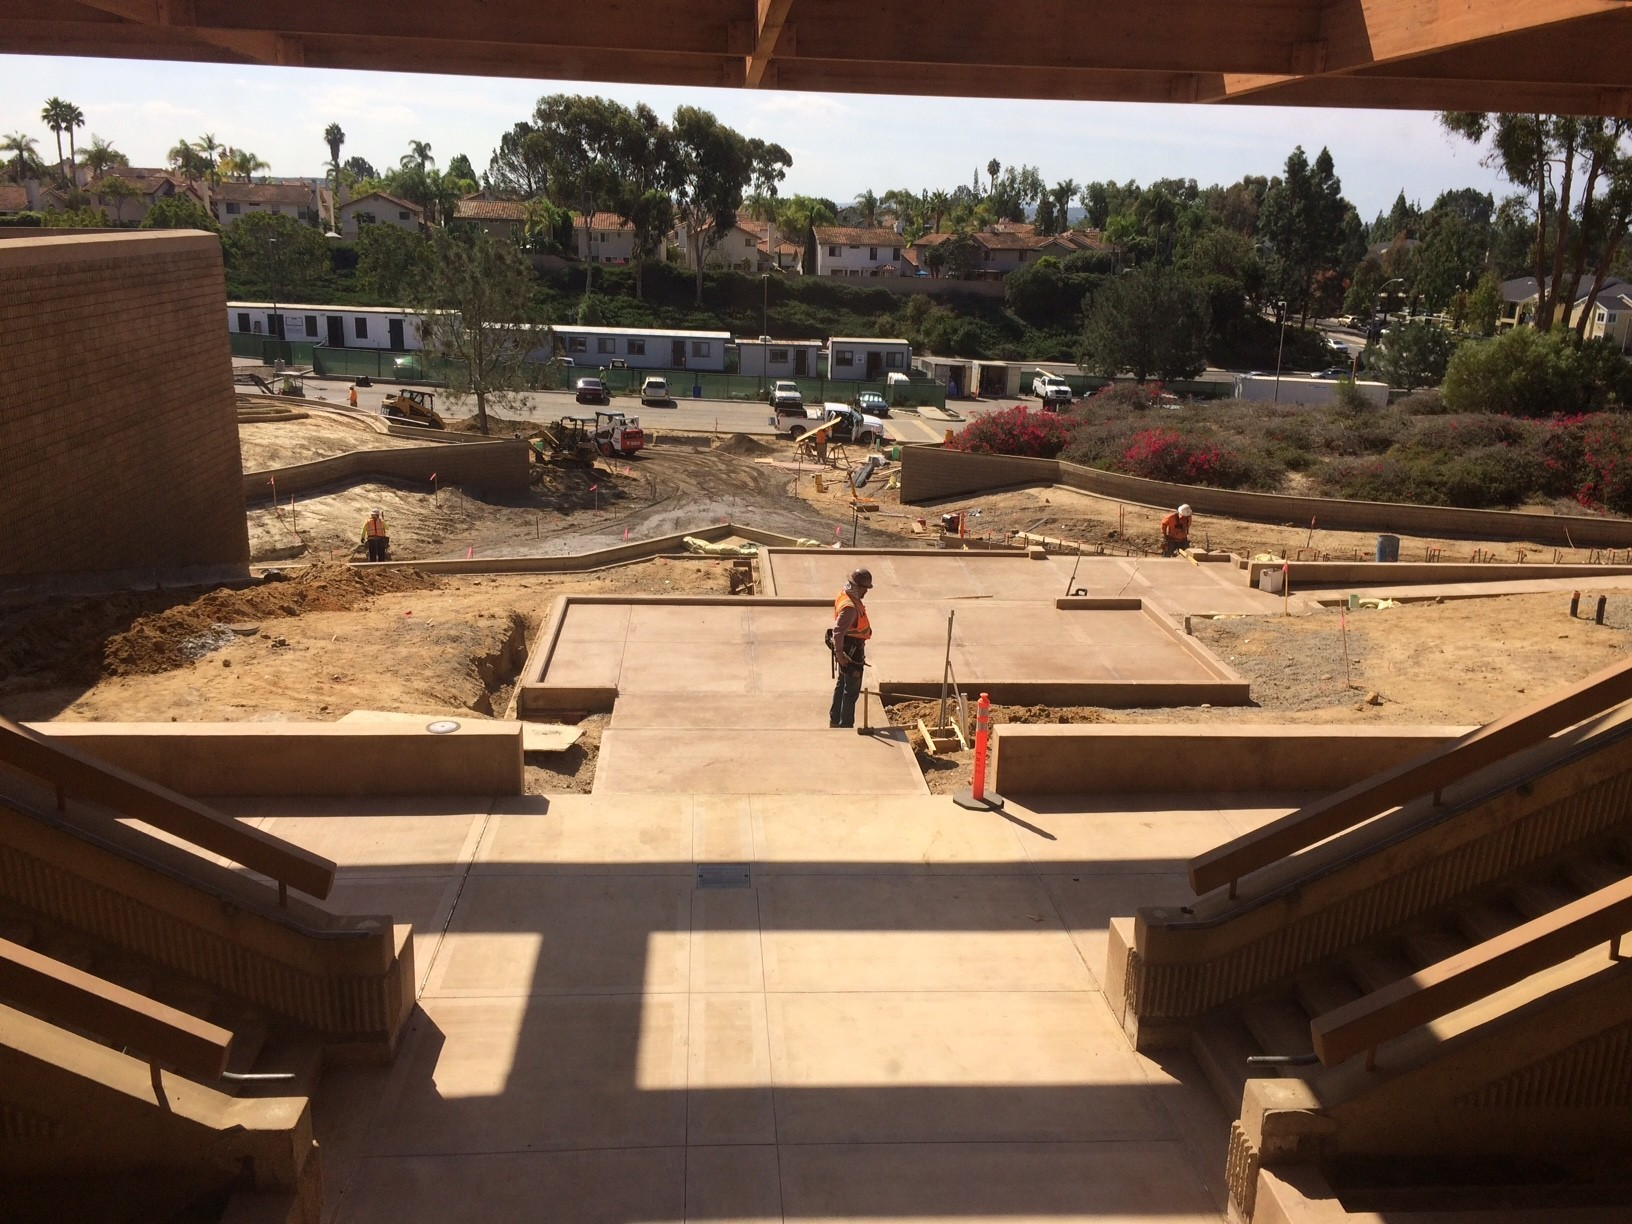 The new Torrey Pines entrance under construction